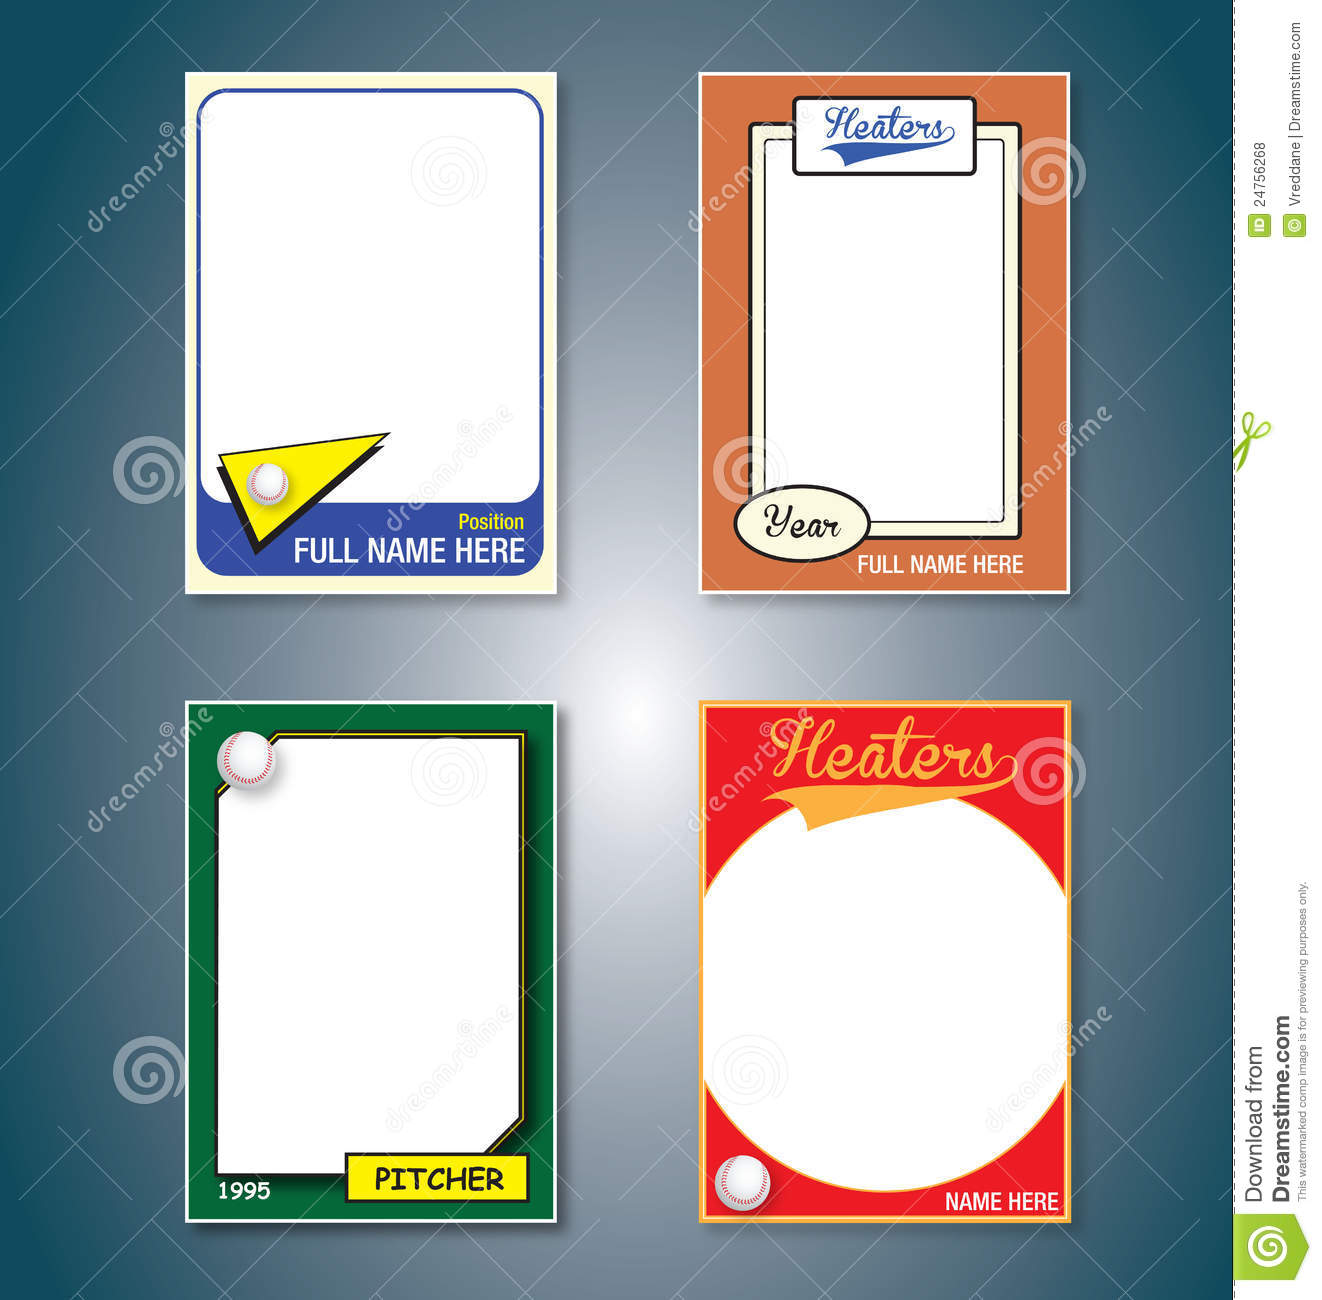 Custom Card Template » Free Trading Card Template Download - Free ...